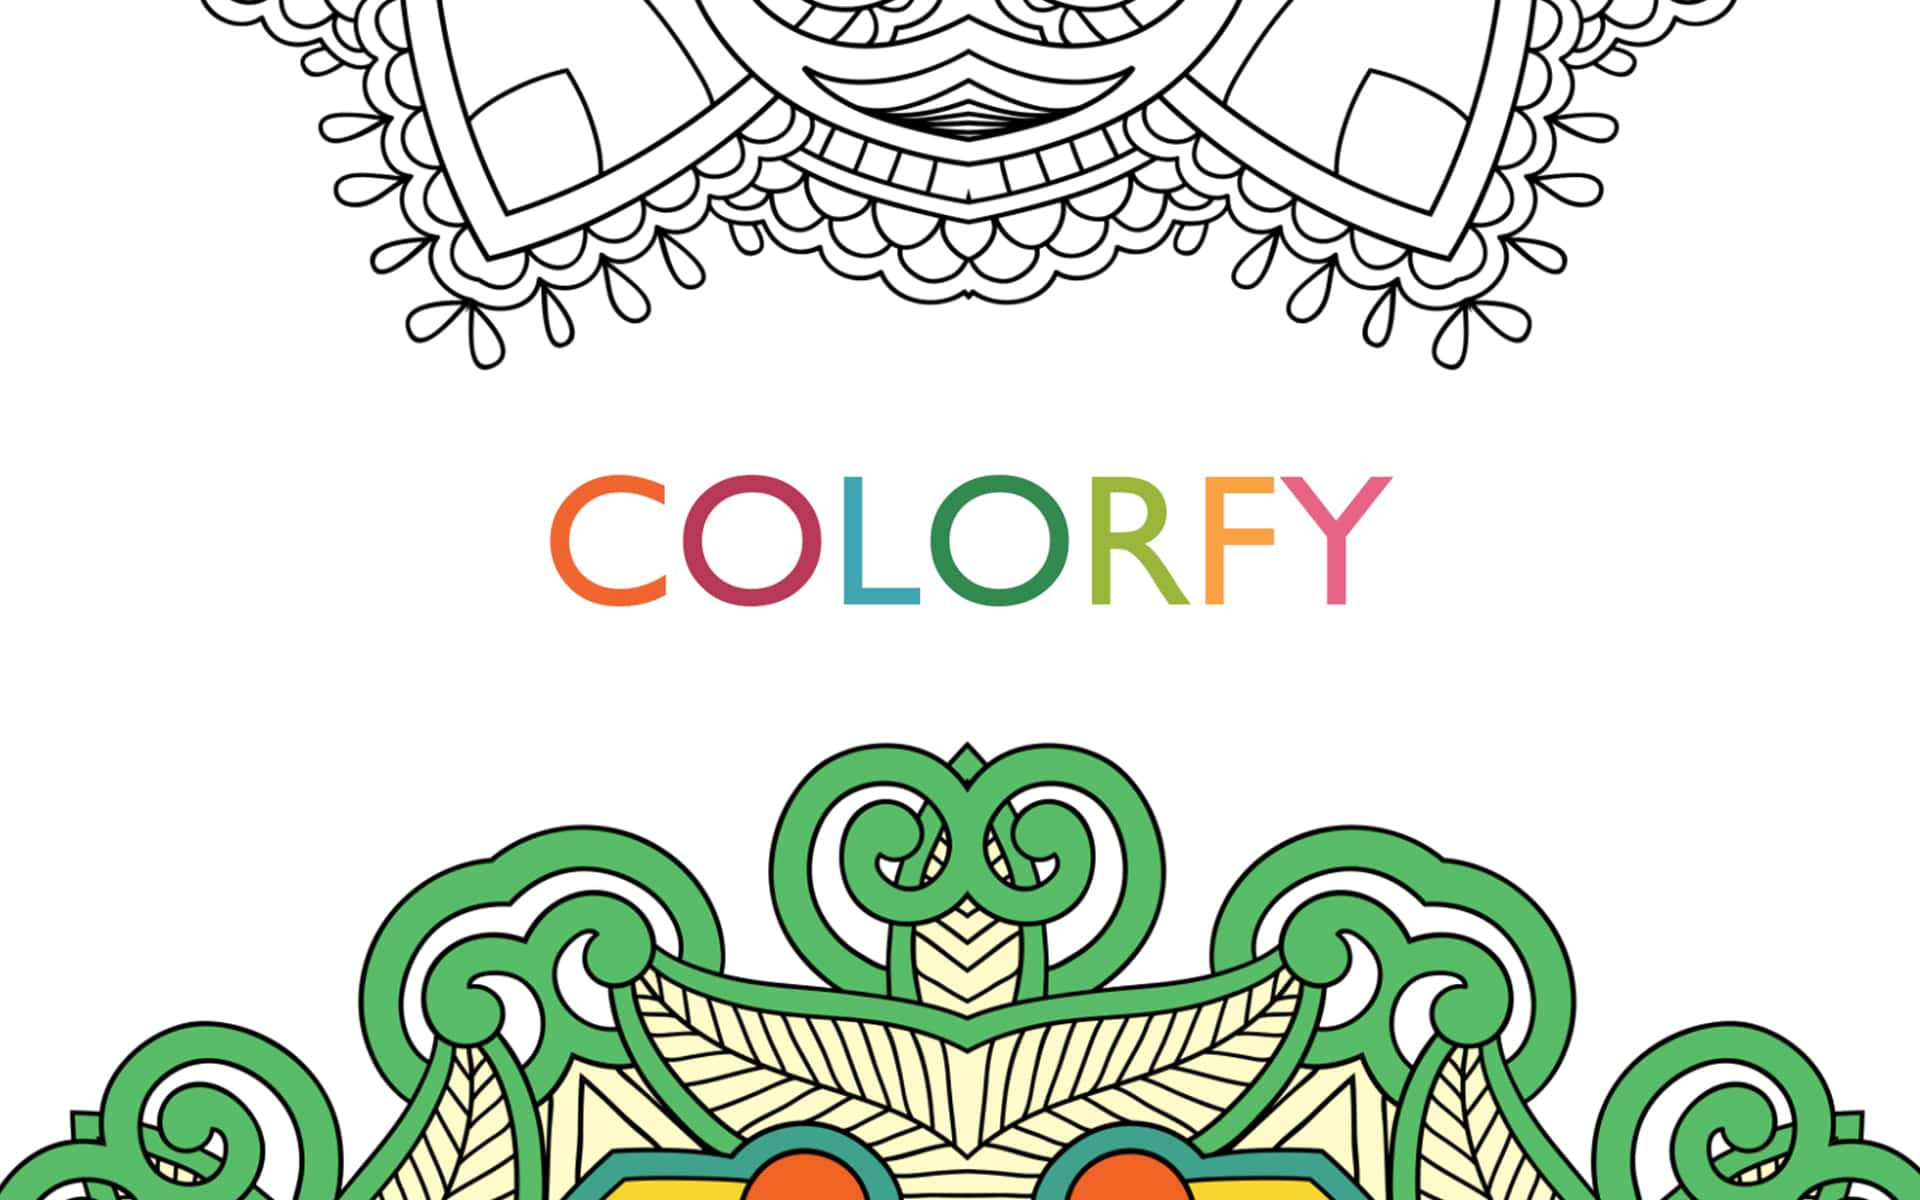 Colorfy for Windows 10 PC Download